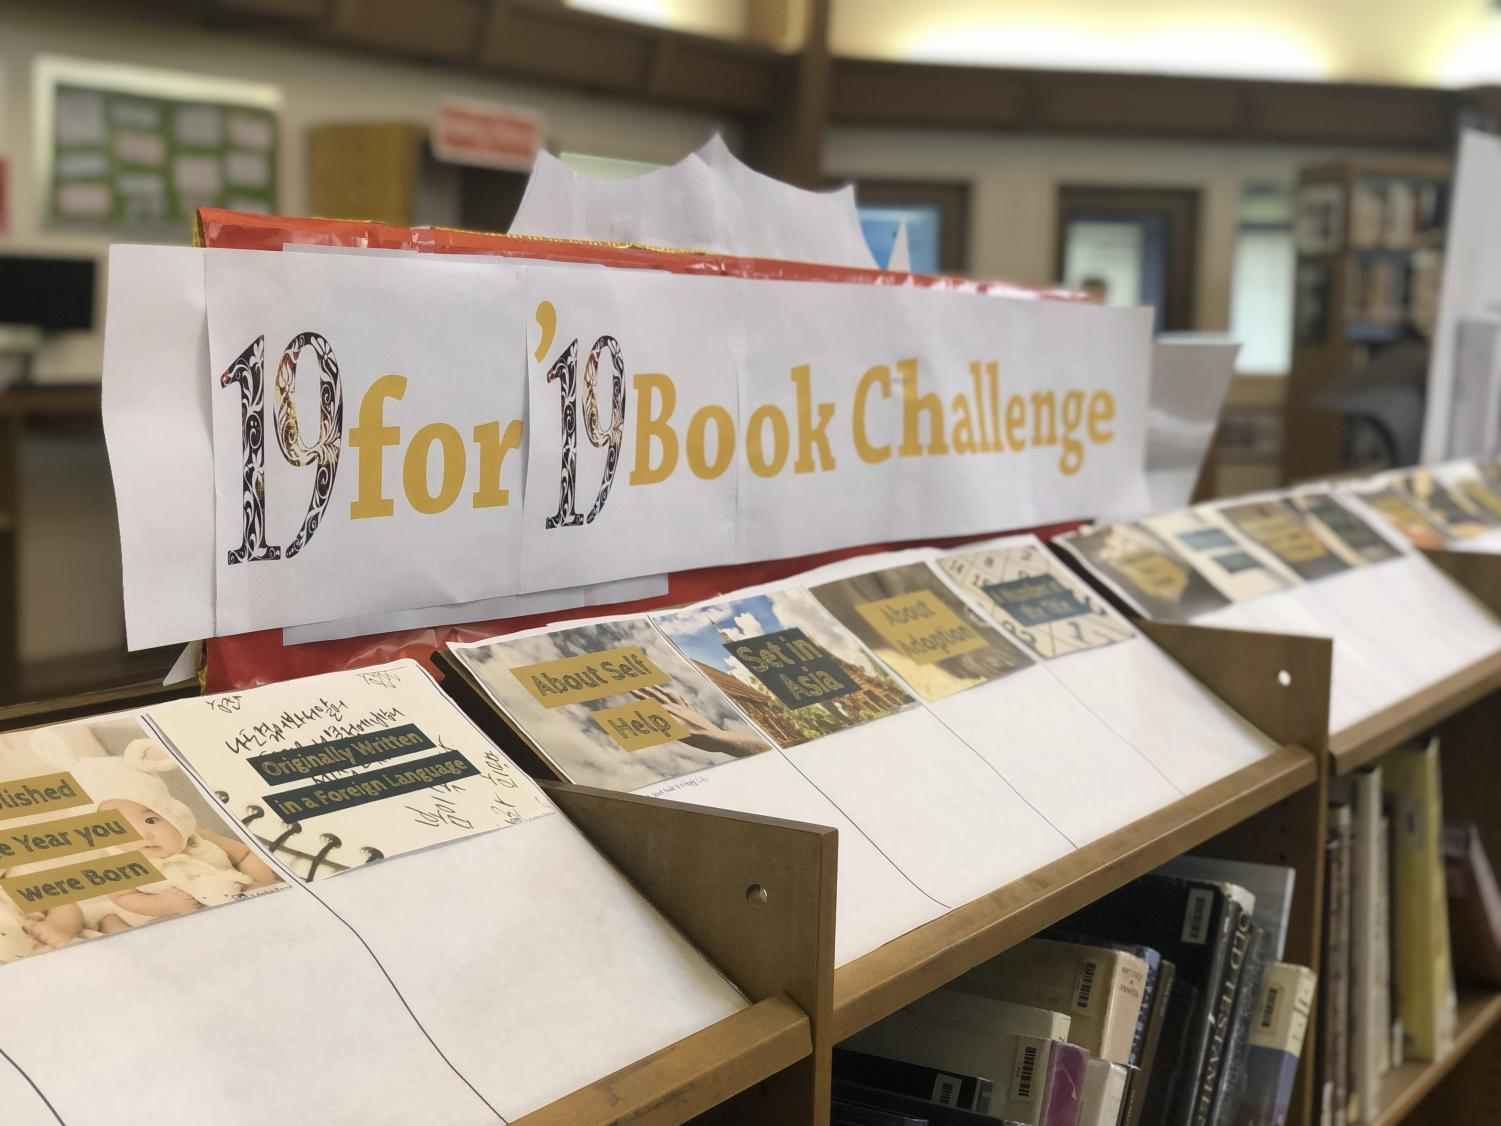 The 19 for '19 Book Challenge is now on display in Fawcett Library.